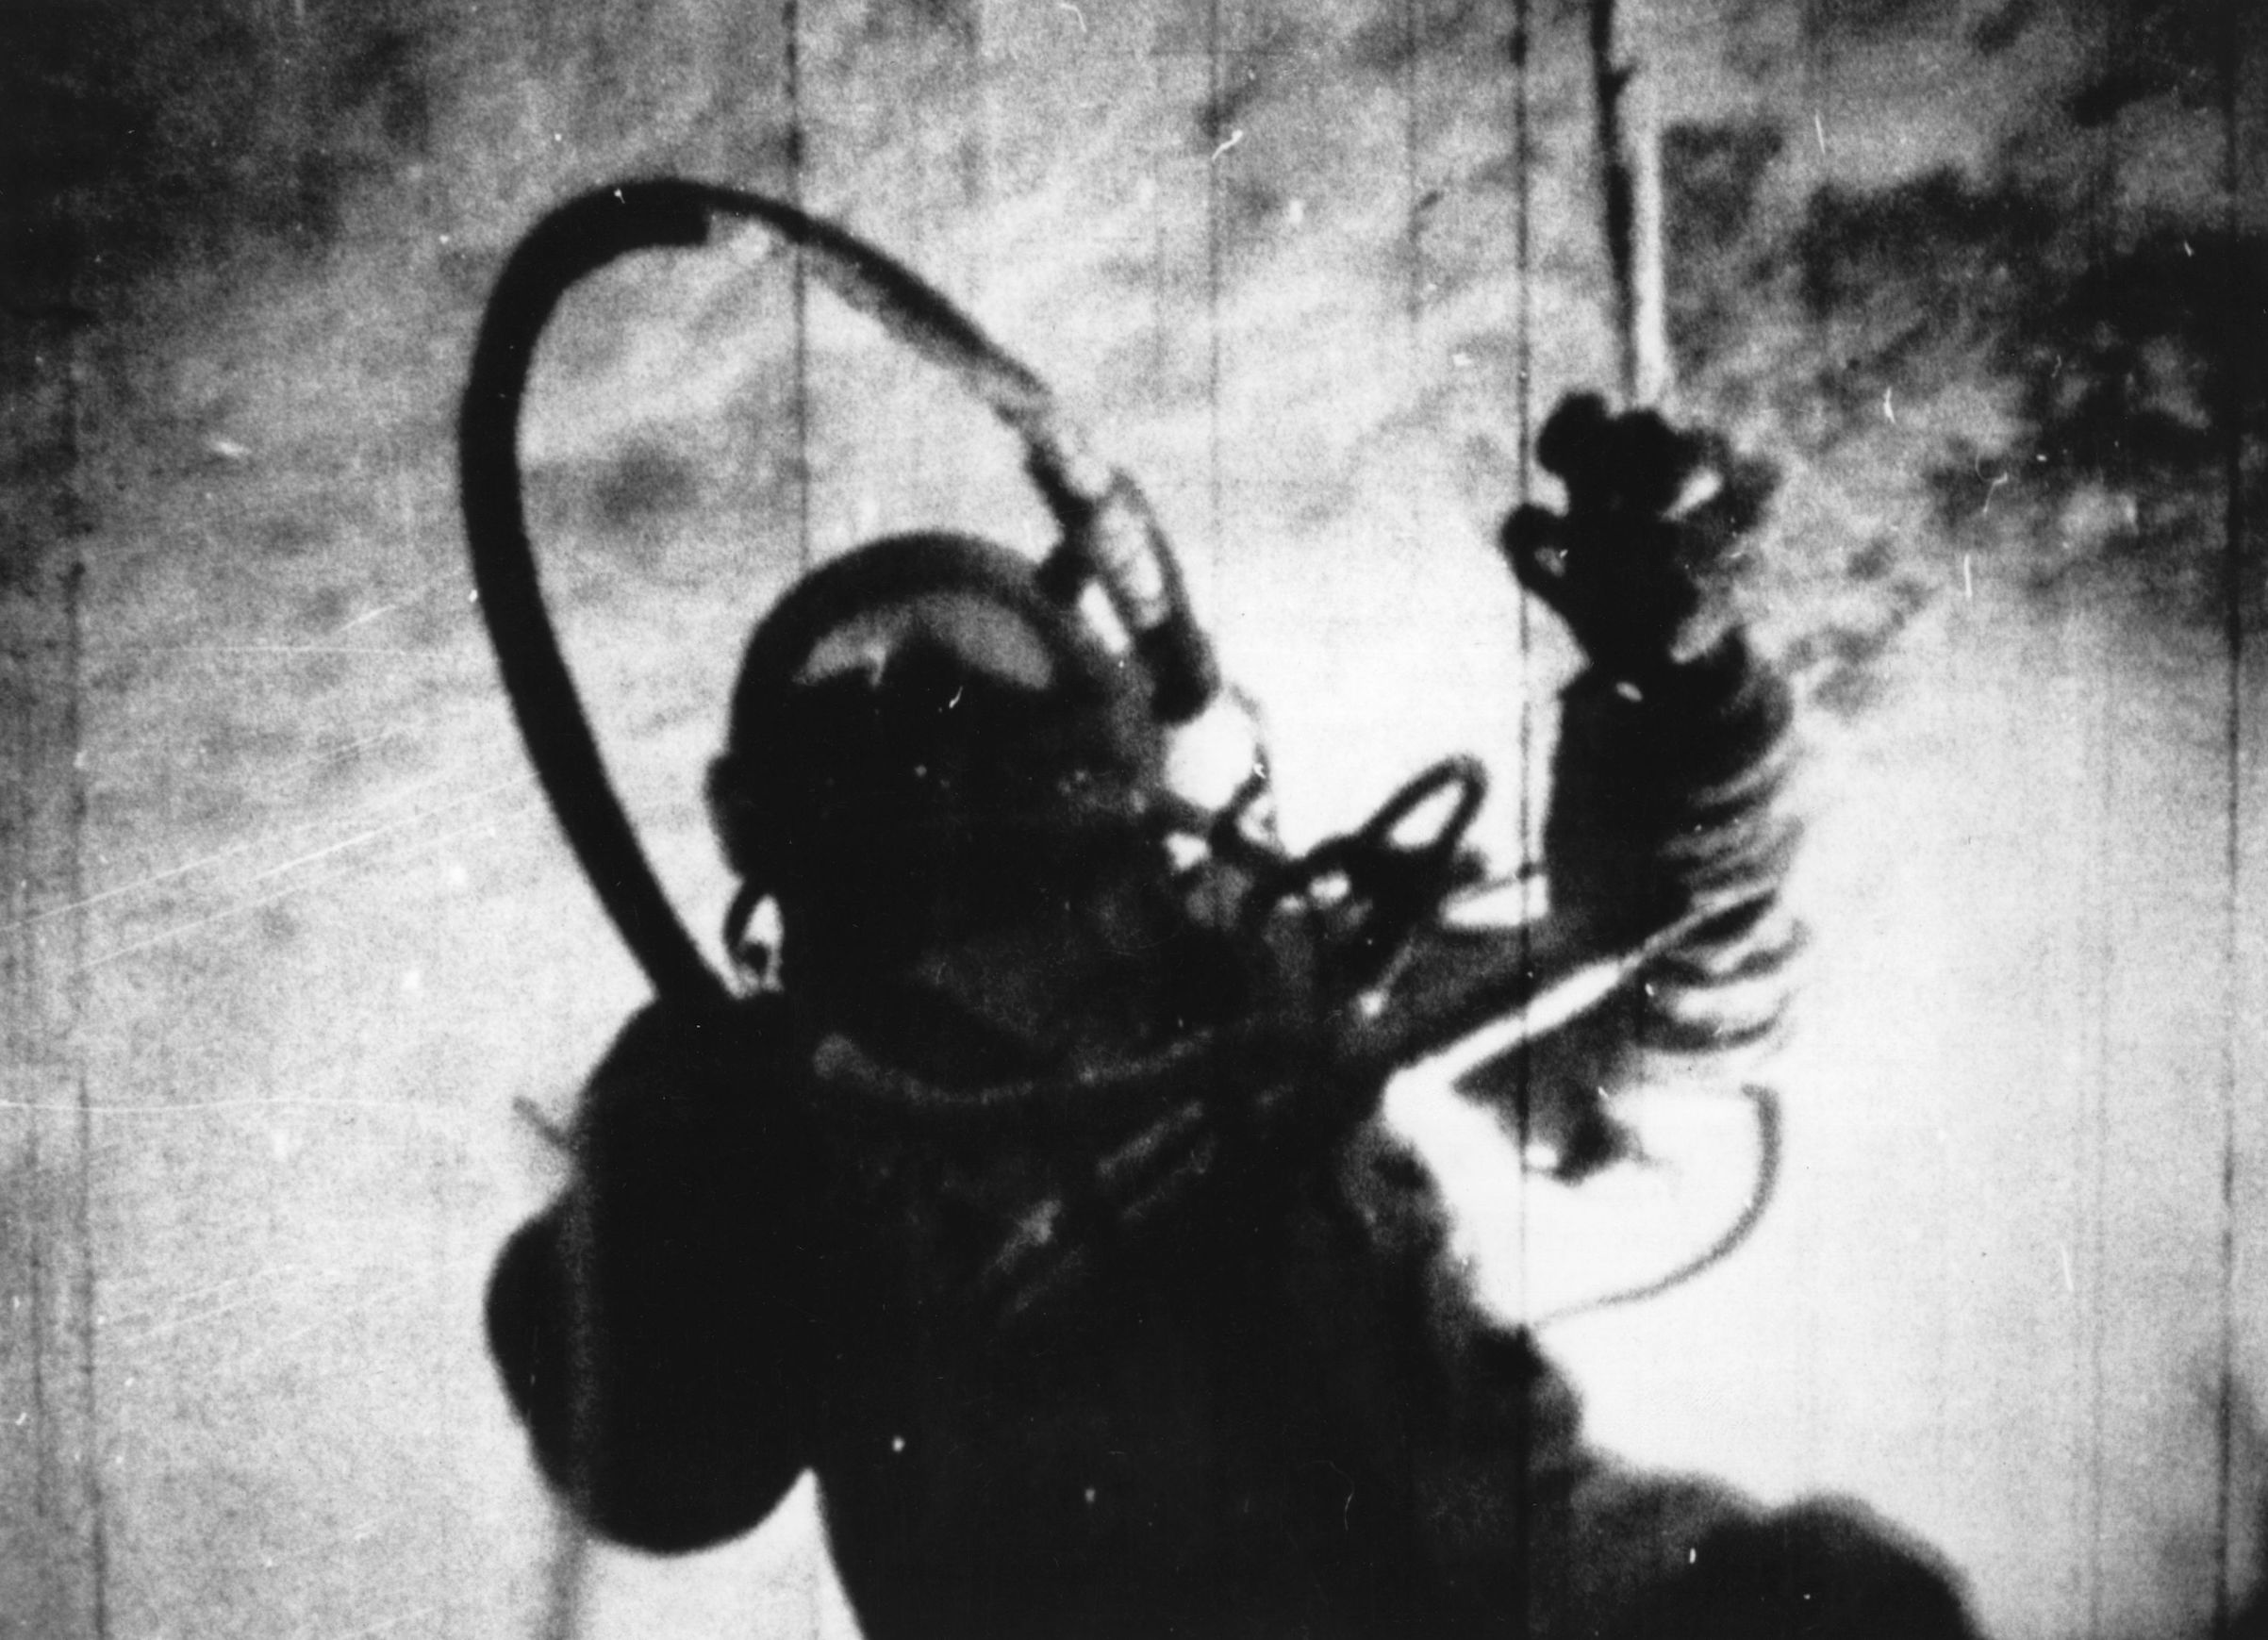 Russian astronaut Alexei Arkhipovich Leonov becomes the first man to walk in space, on March 18, 1965.